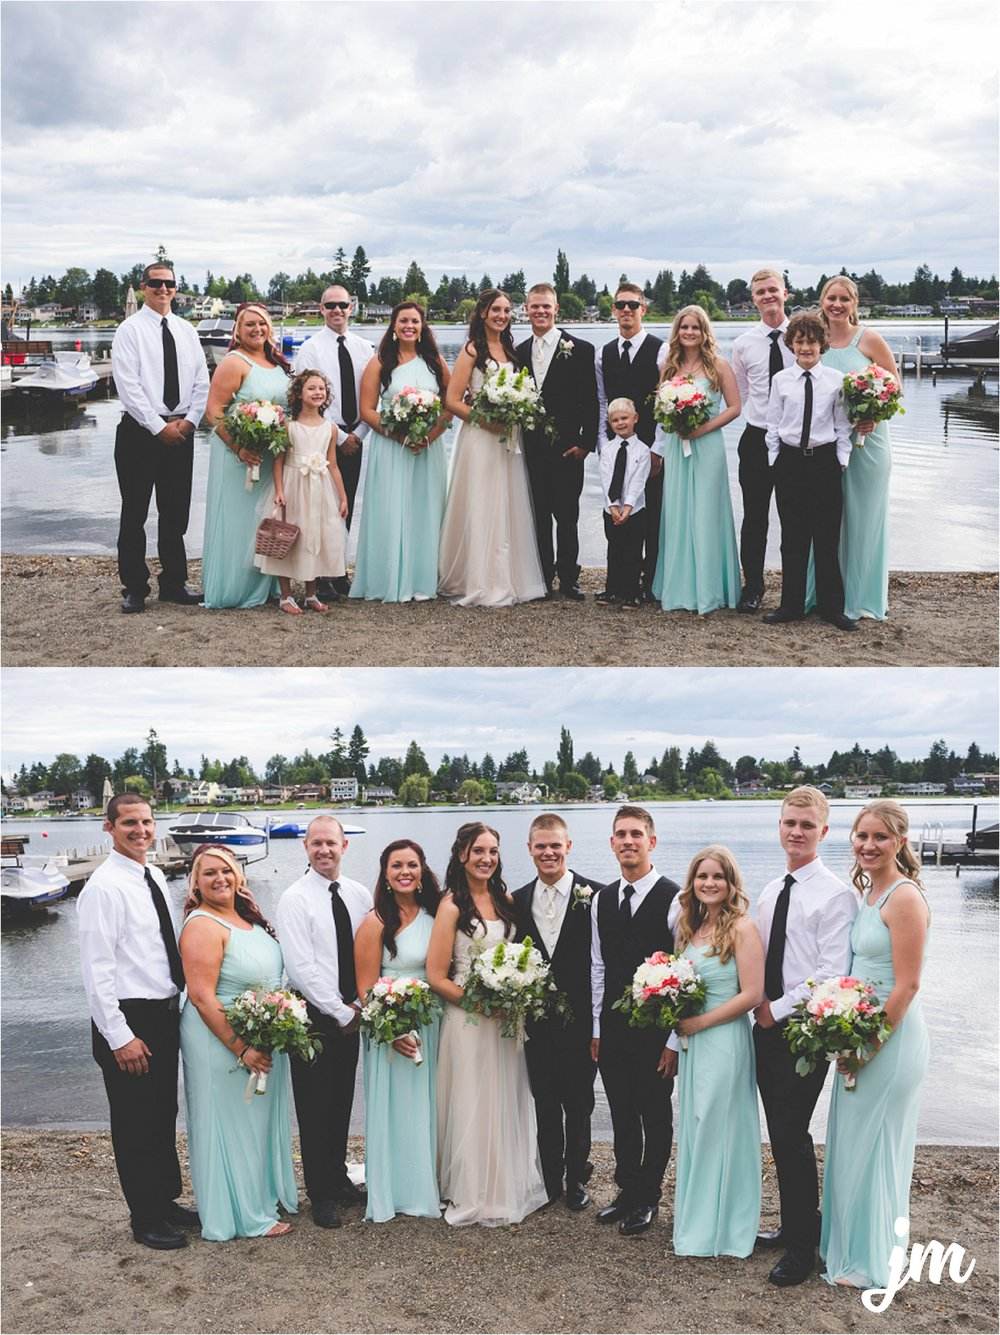 jannicka-mayte-intimate-backyard-lake-wedding-kent-wa-pacific-northwest-wedding-photographer_0029.jpg